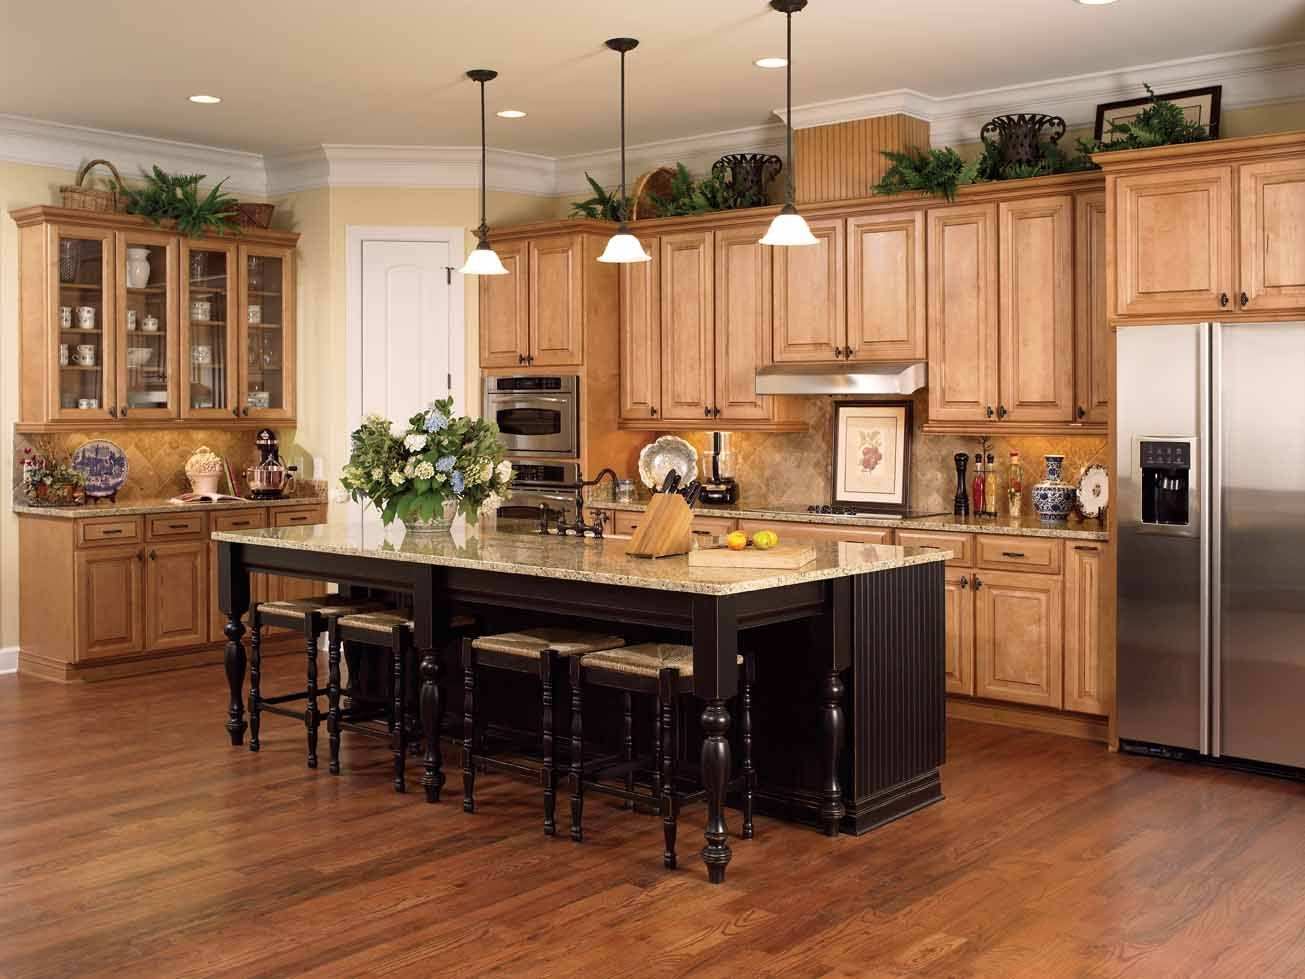 Like This Kitchen Custom Kitchen Cabinets Maple Kitchen Cabinets Kitchen Renovation